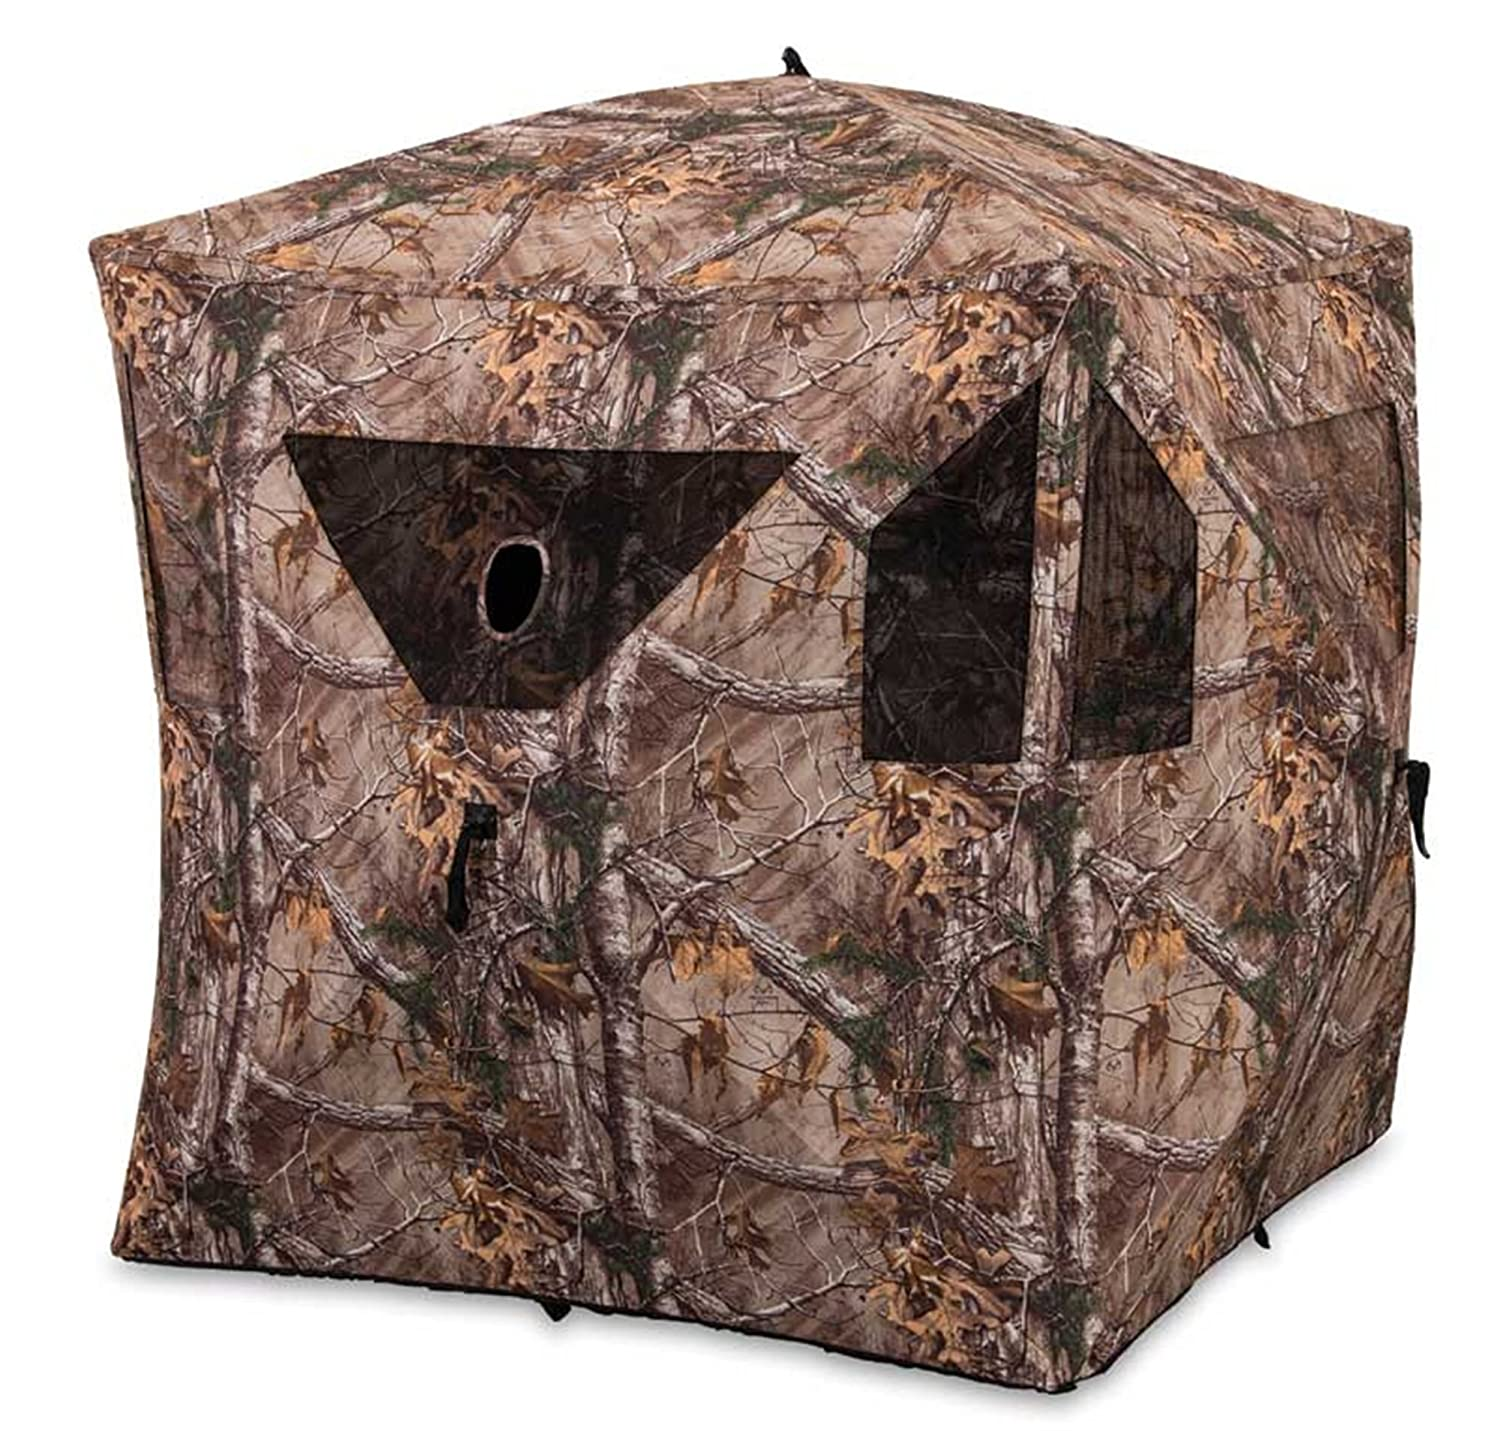 the high albert desert s pse quackenbush blind diy blinds comes by handy for camouflage in netting pses making ground constructing